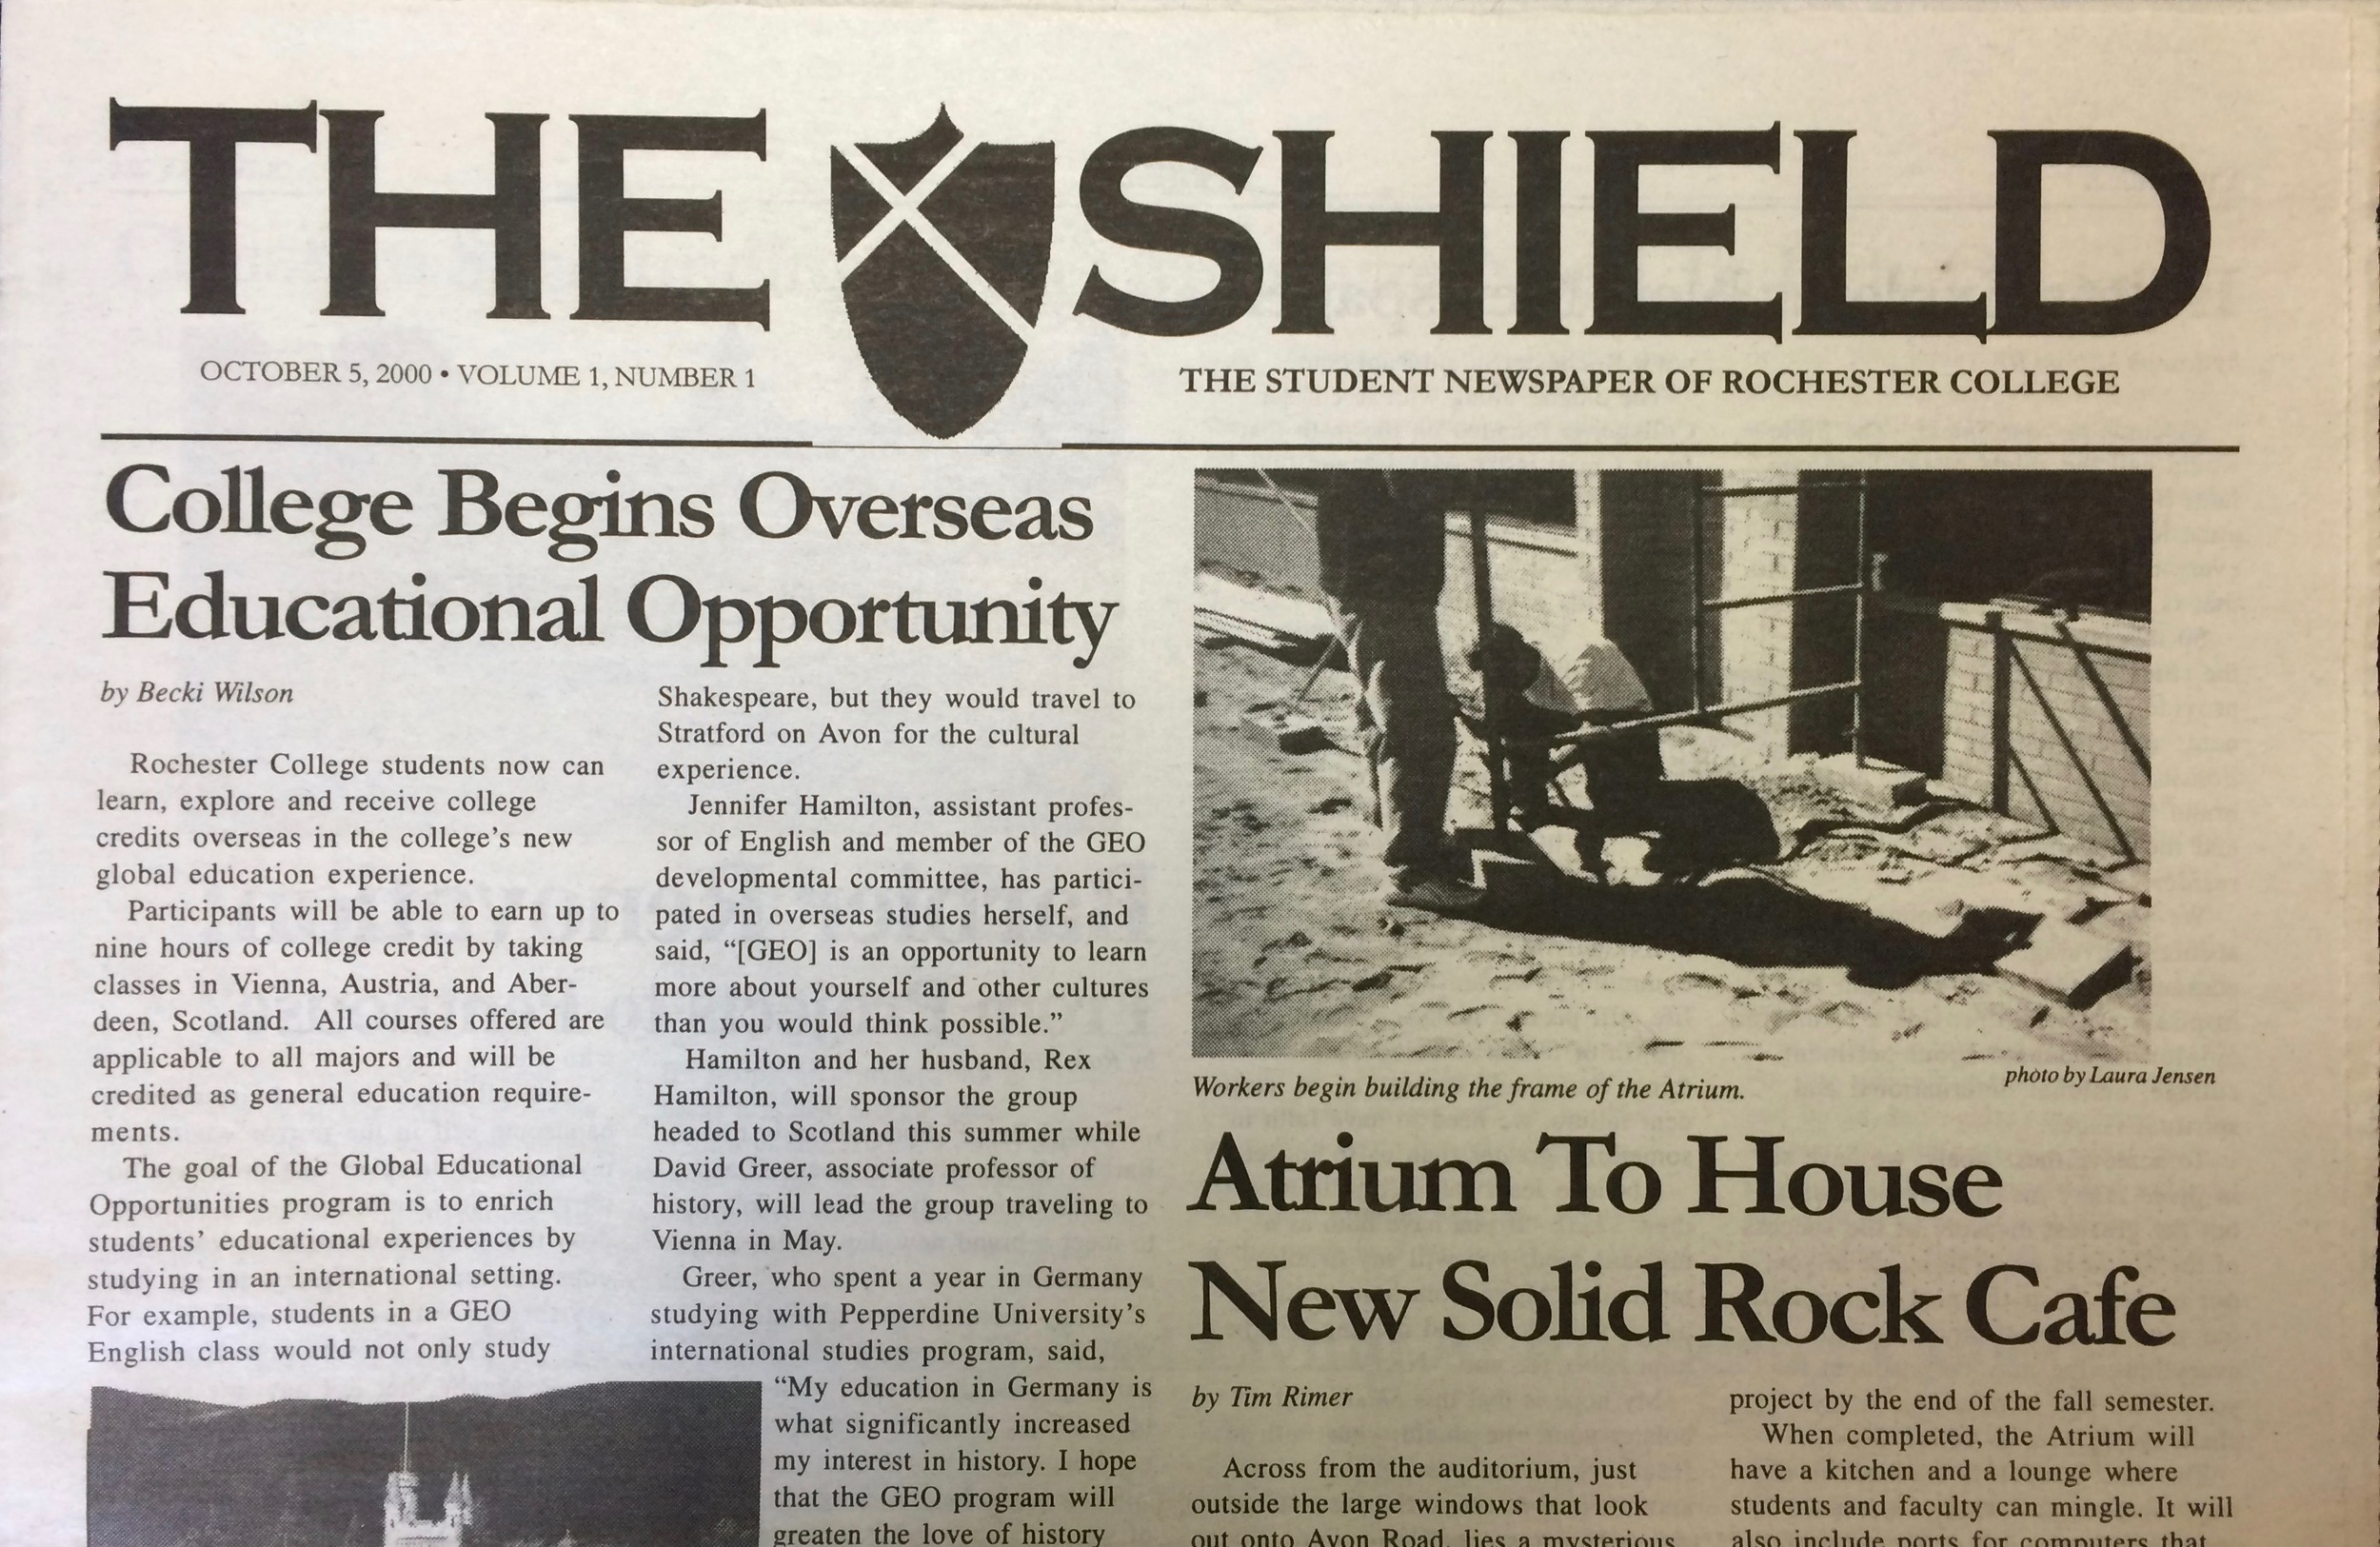 the first issue in 2000